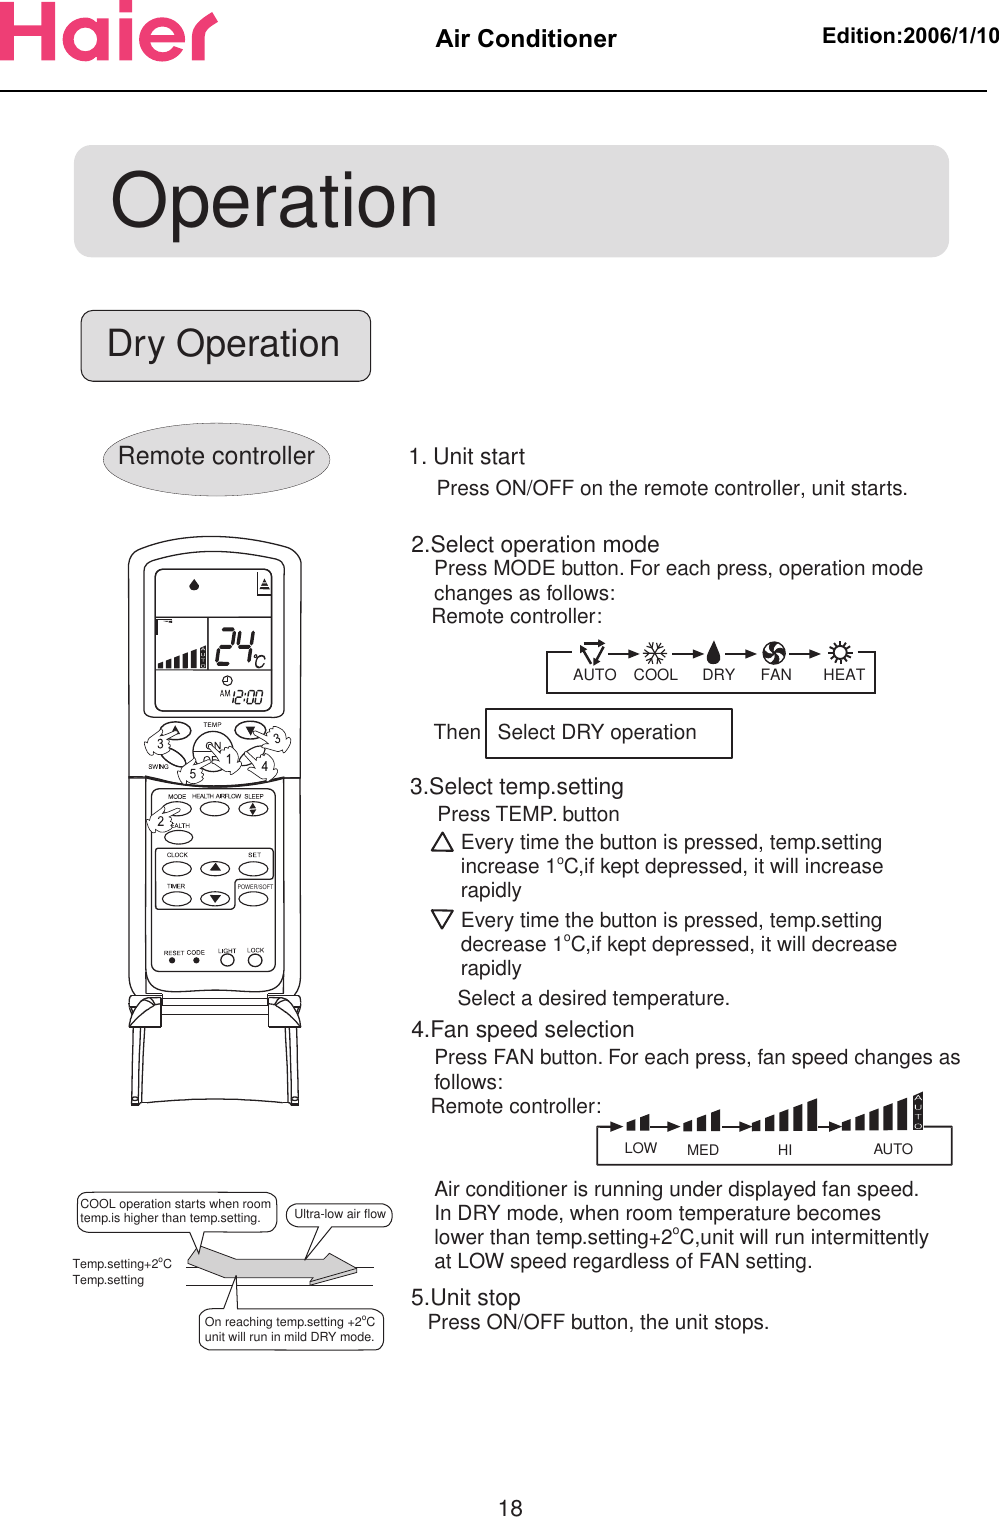 Haier Compact Air Conditioner Users Manual